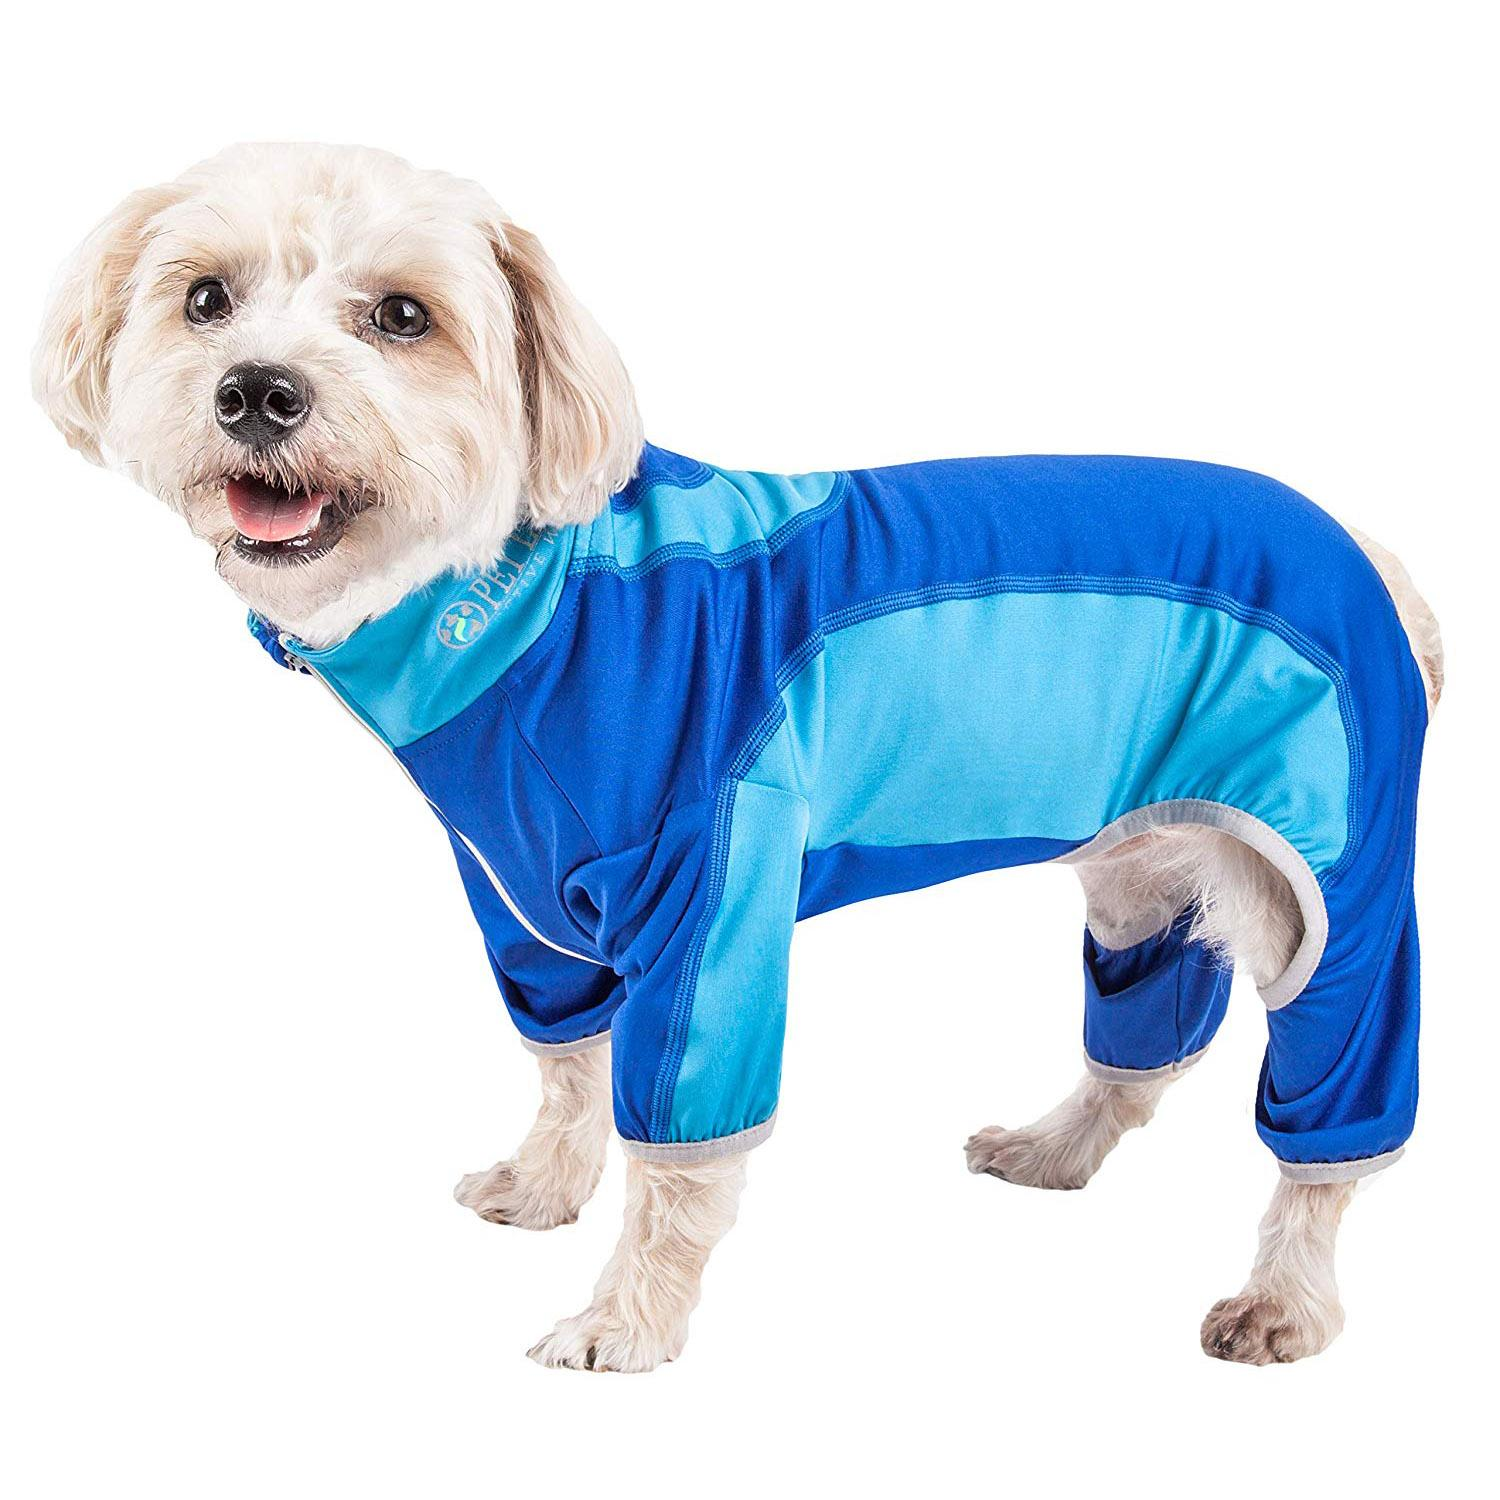 Pet Life ACTIVE 'Warm-Pup' Performance Jumpsuit - Dark Blue and Light Blue